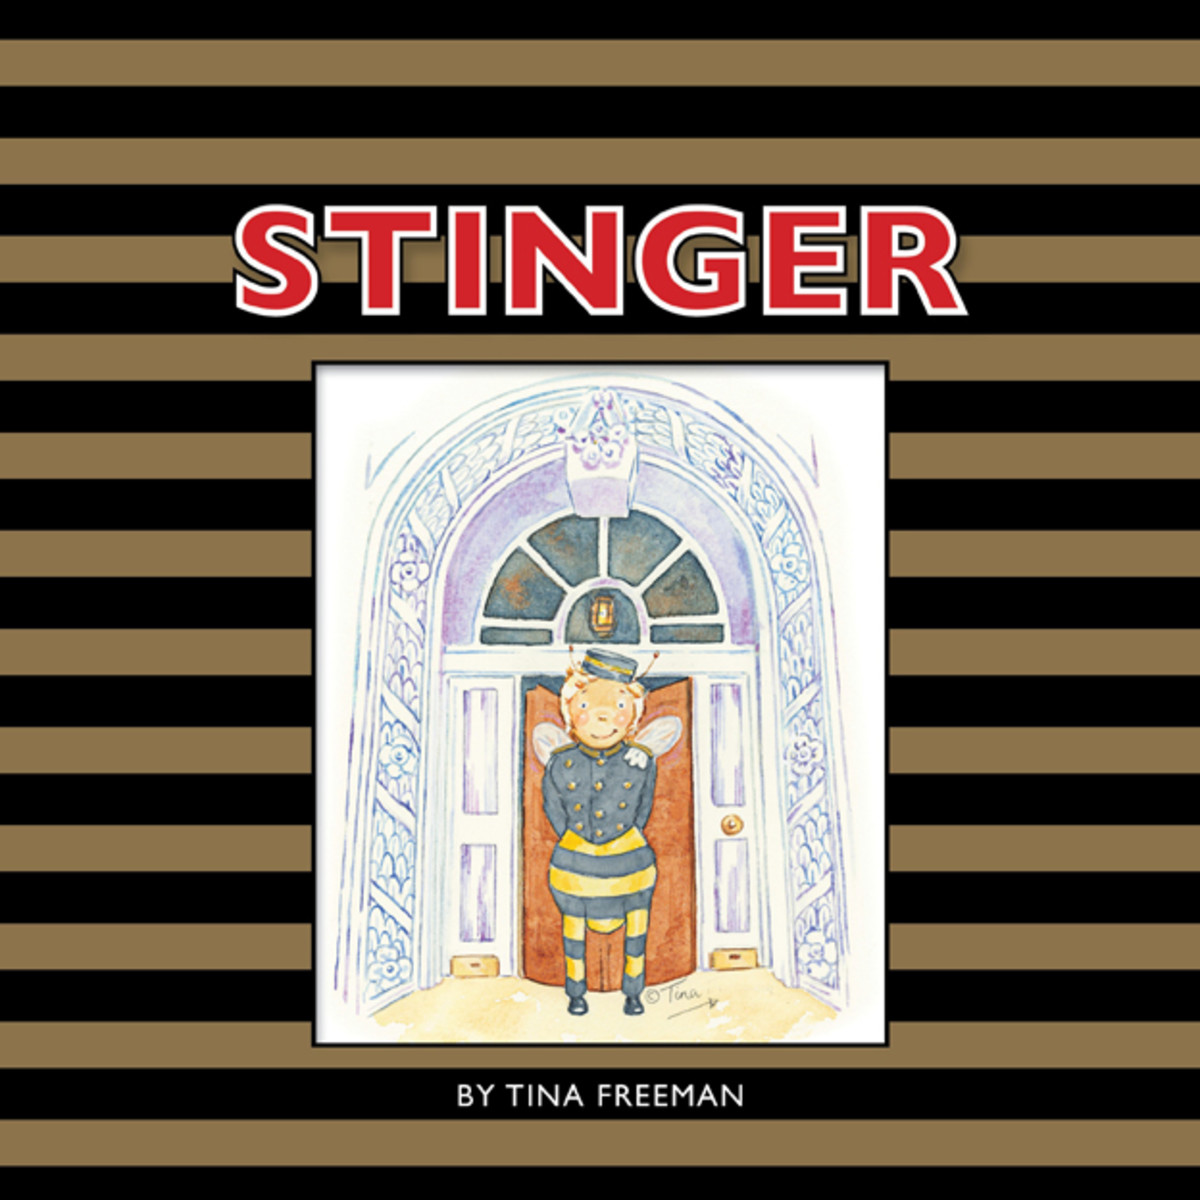 Stinger, a delightful children's book written and illustrated by Tina Freeman, was inspired by the 1979 film version of Quadrophenia.